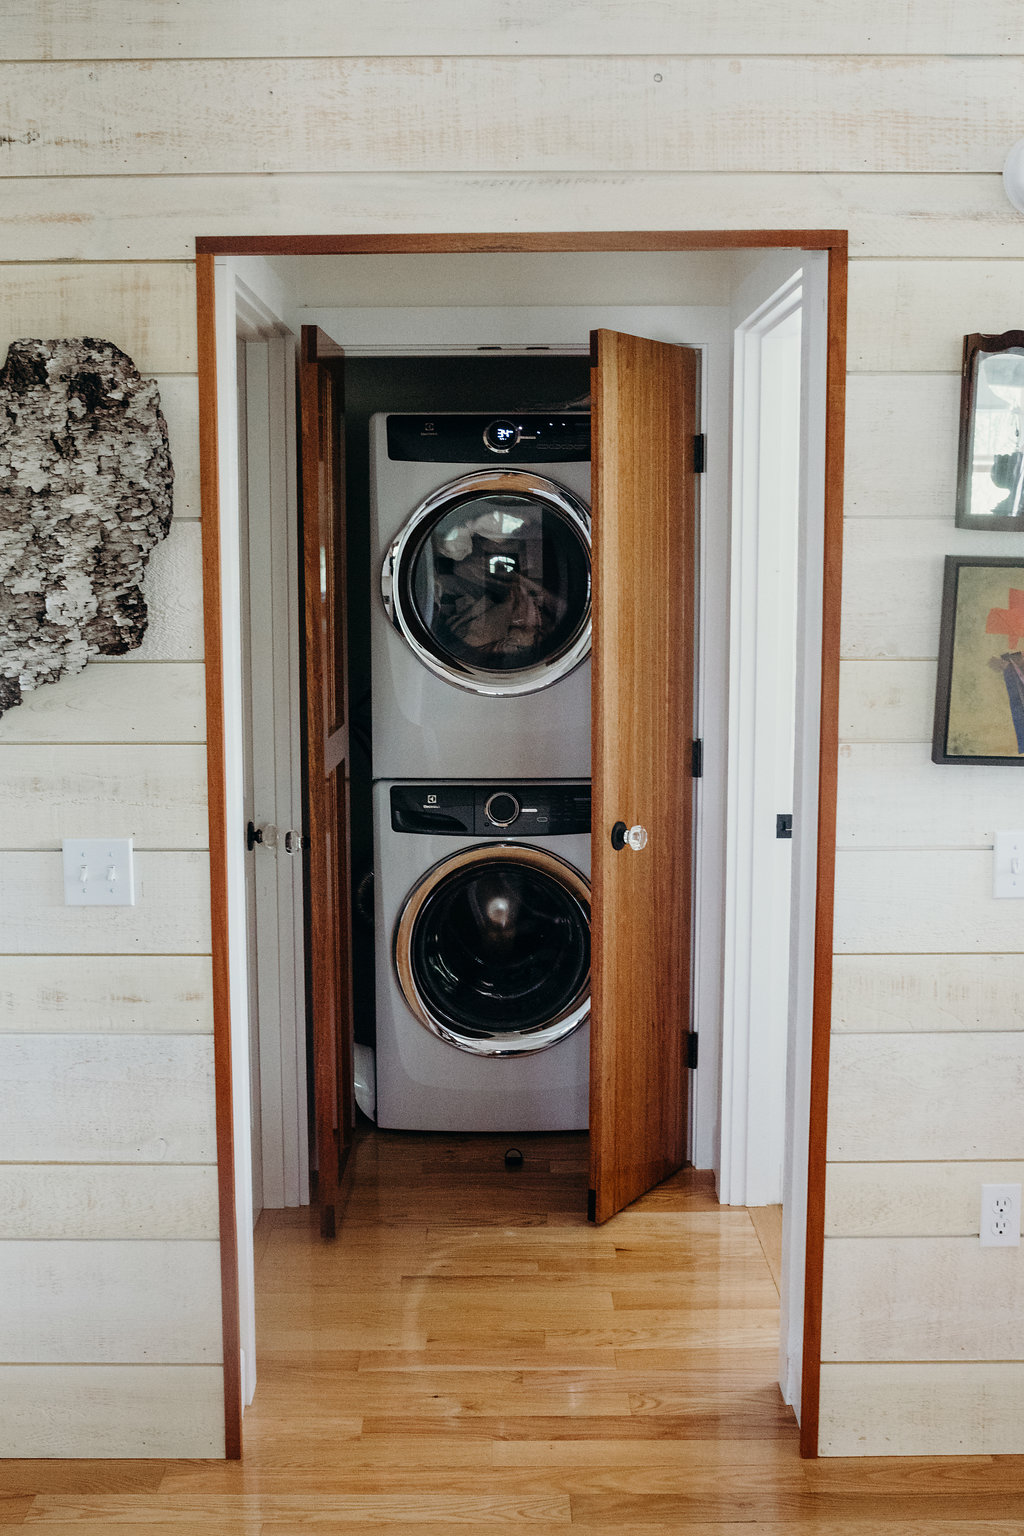 The Love Nest Washer and Dryer